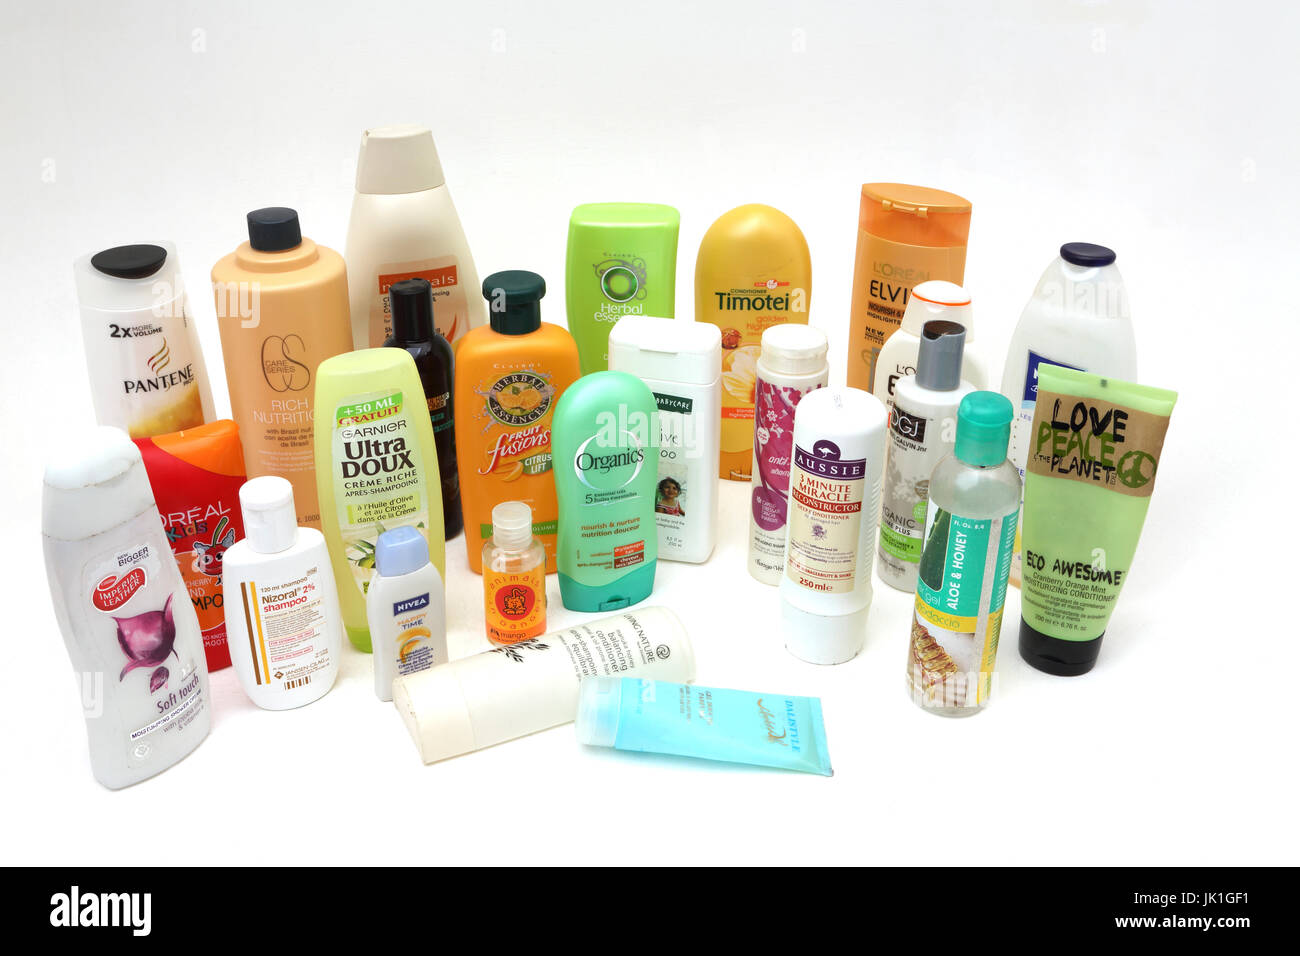 A Collection of Shampoo, Conditioners, Shower Gels and Bubble Bath - Stock Image